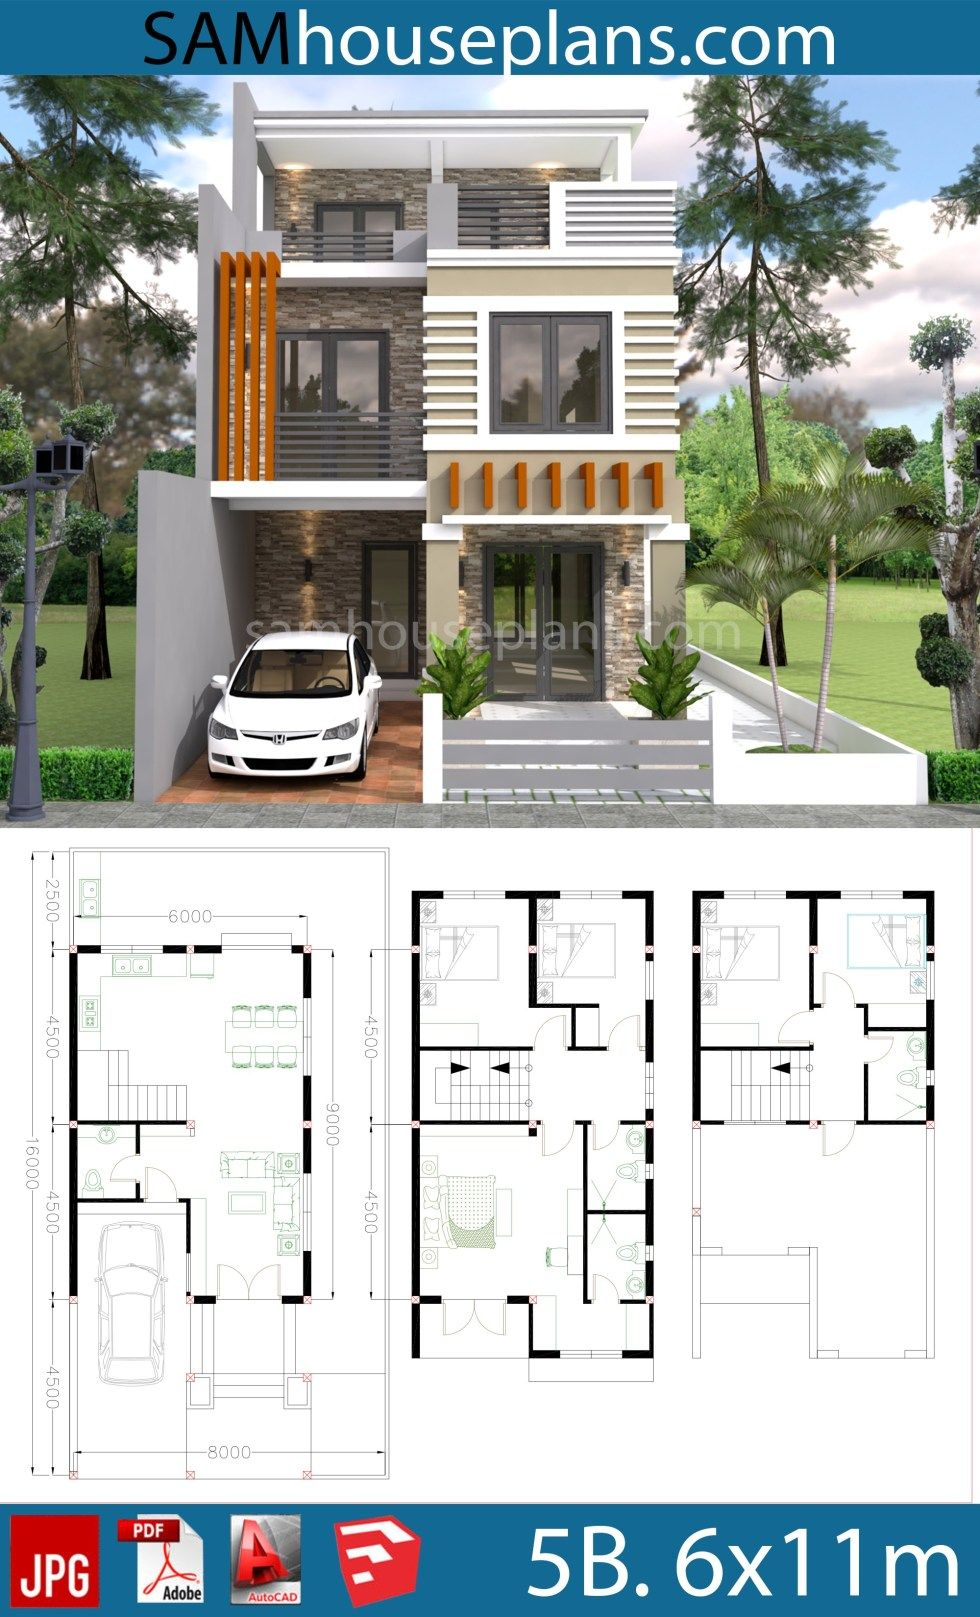 House Plans 6x11m With 5 Bedrooms Plot 8x16m Sam House Plans Duplex House Design 3 Storey House Design House Construction Plan